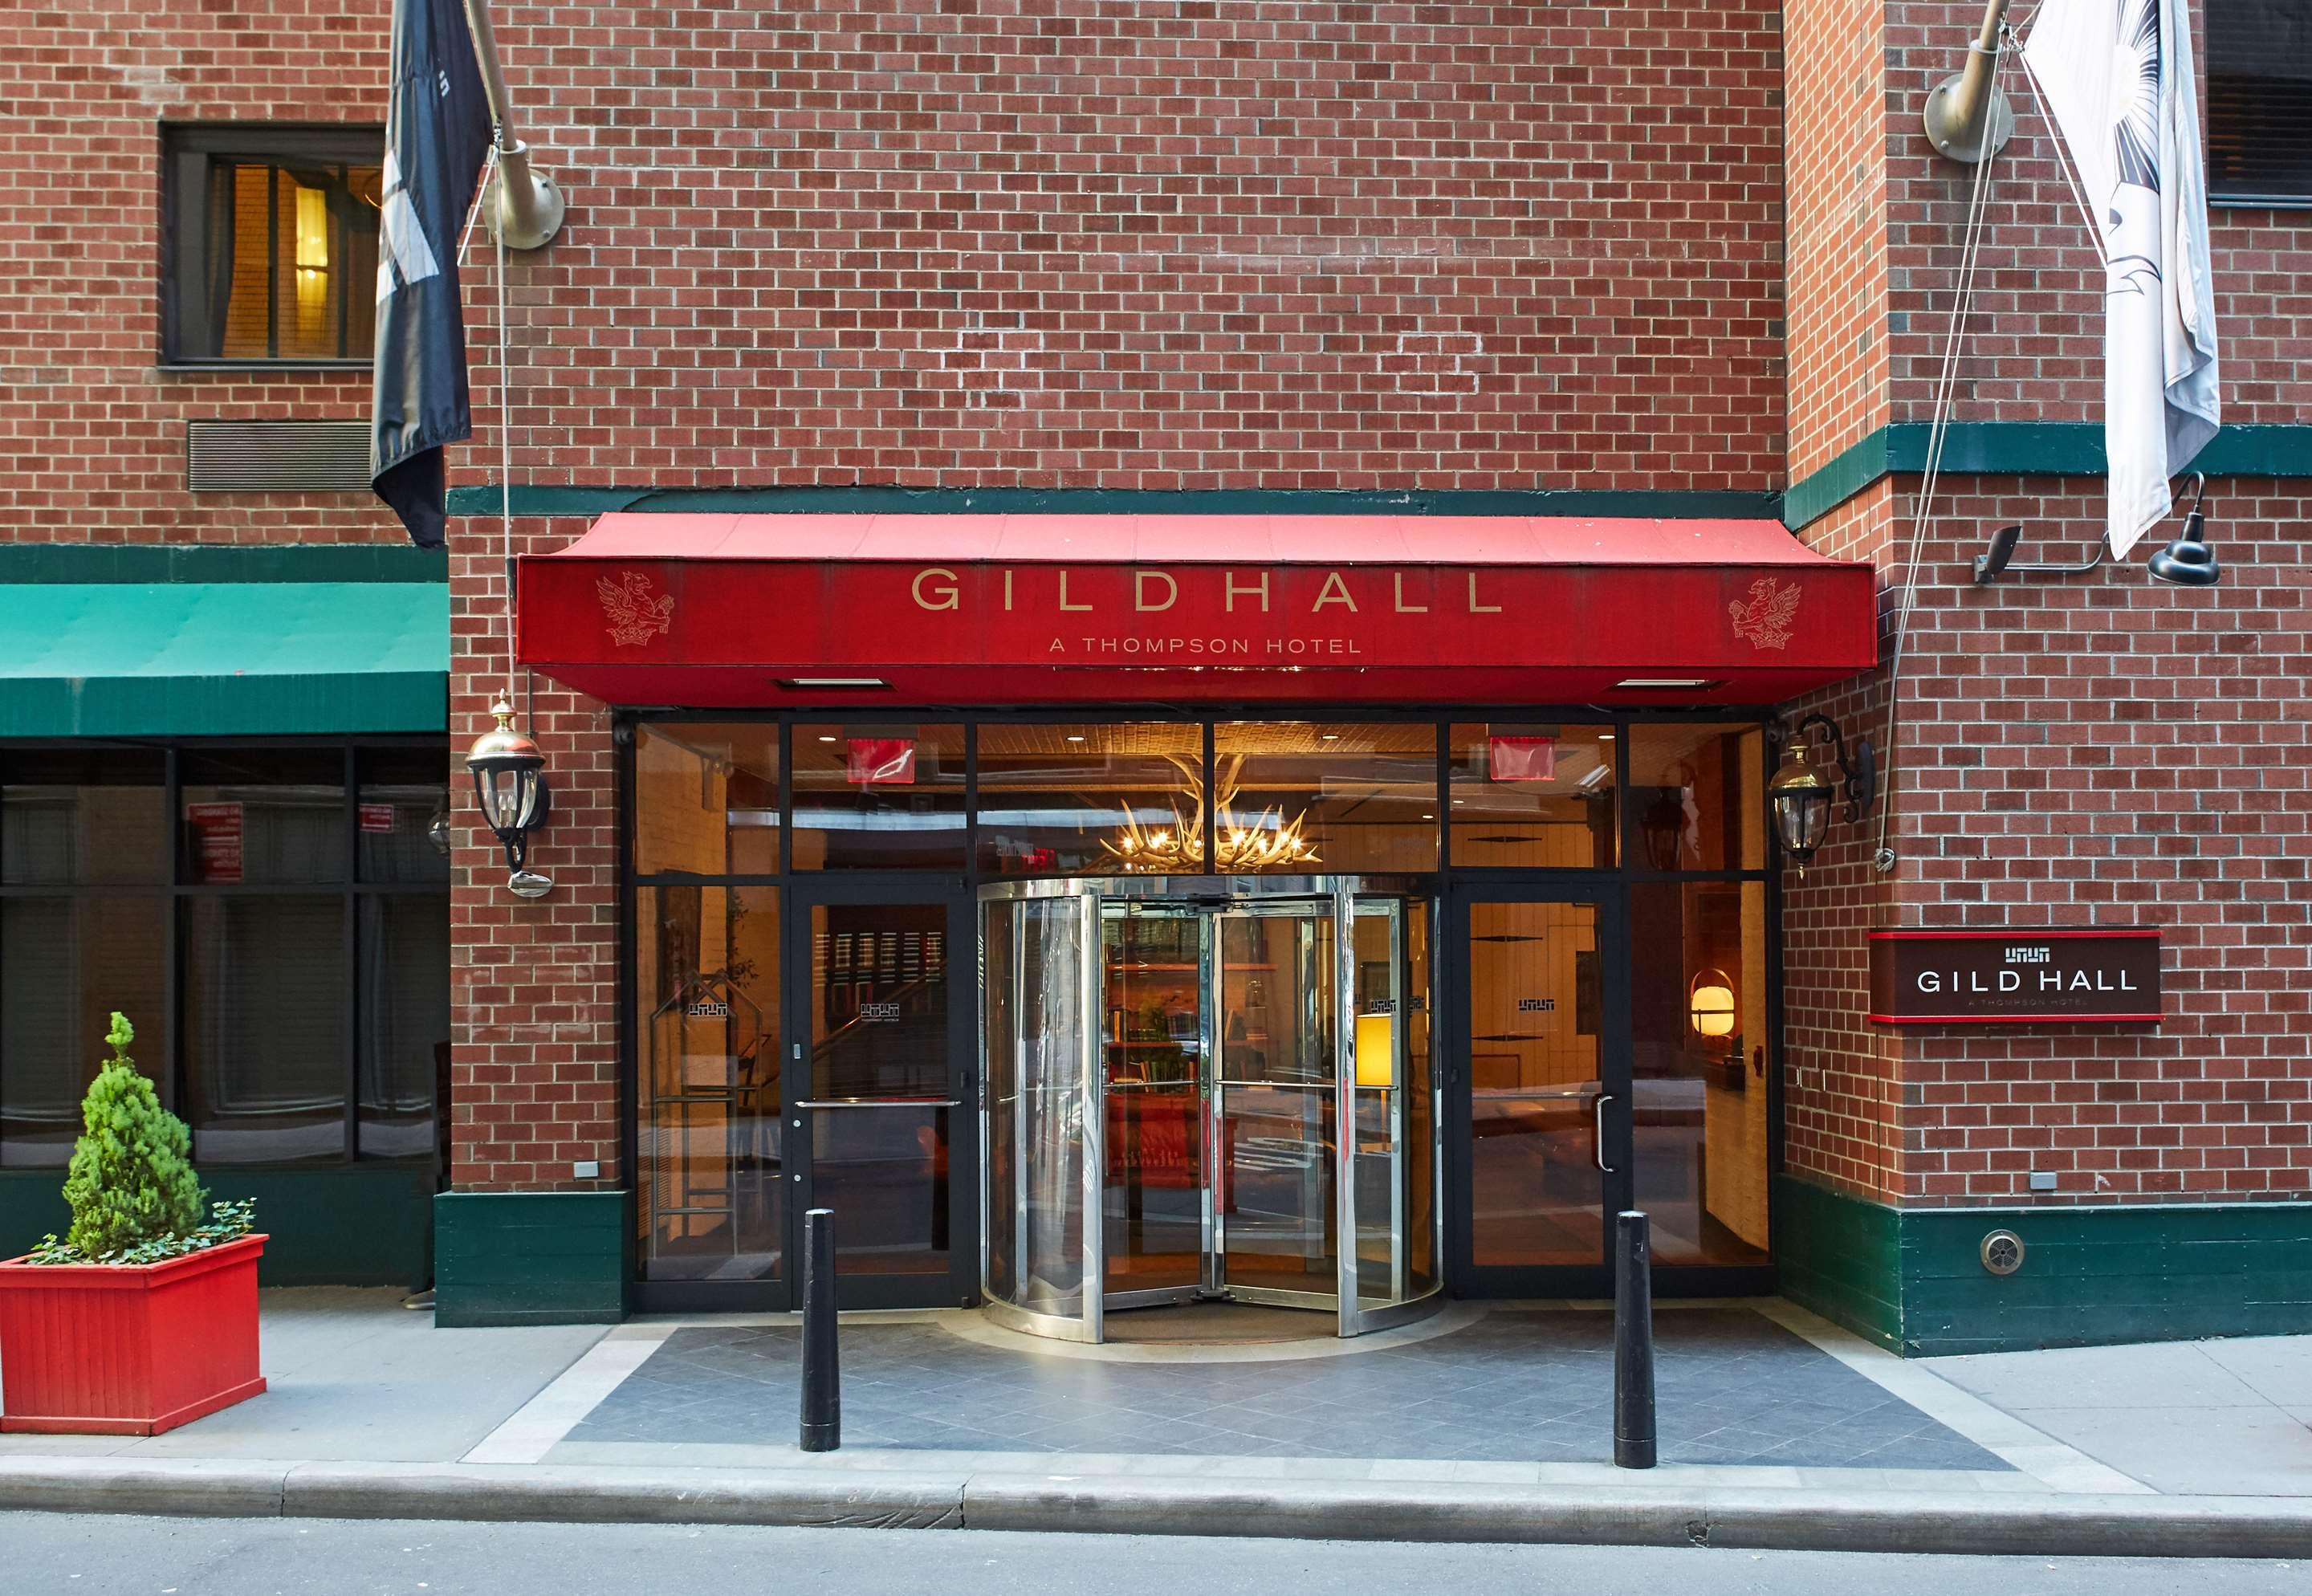 Gild Hall, A Thompson Hotel